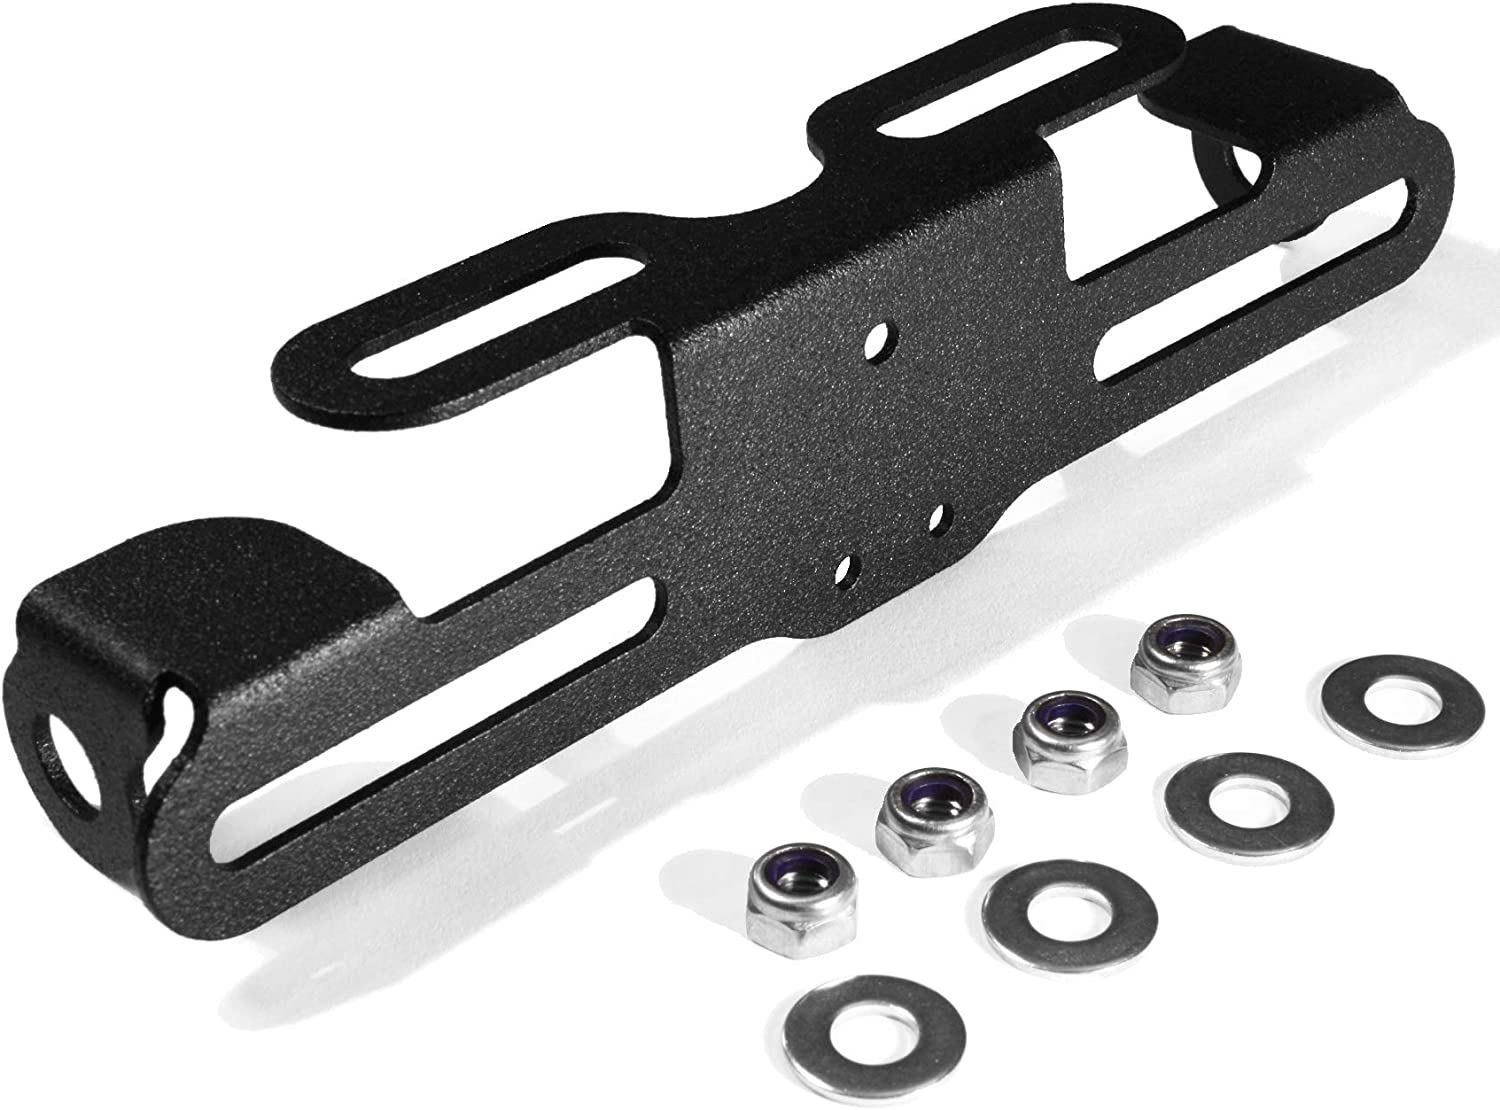 Fees free Fender Eliminator Tail Tidy for 250R 300 Ninja Animer and price revision the Kawasaki